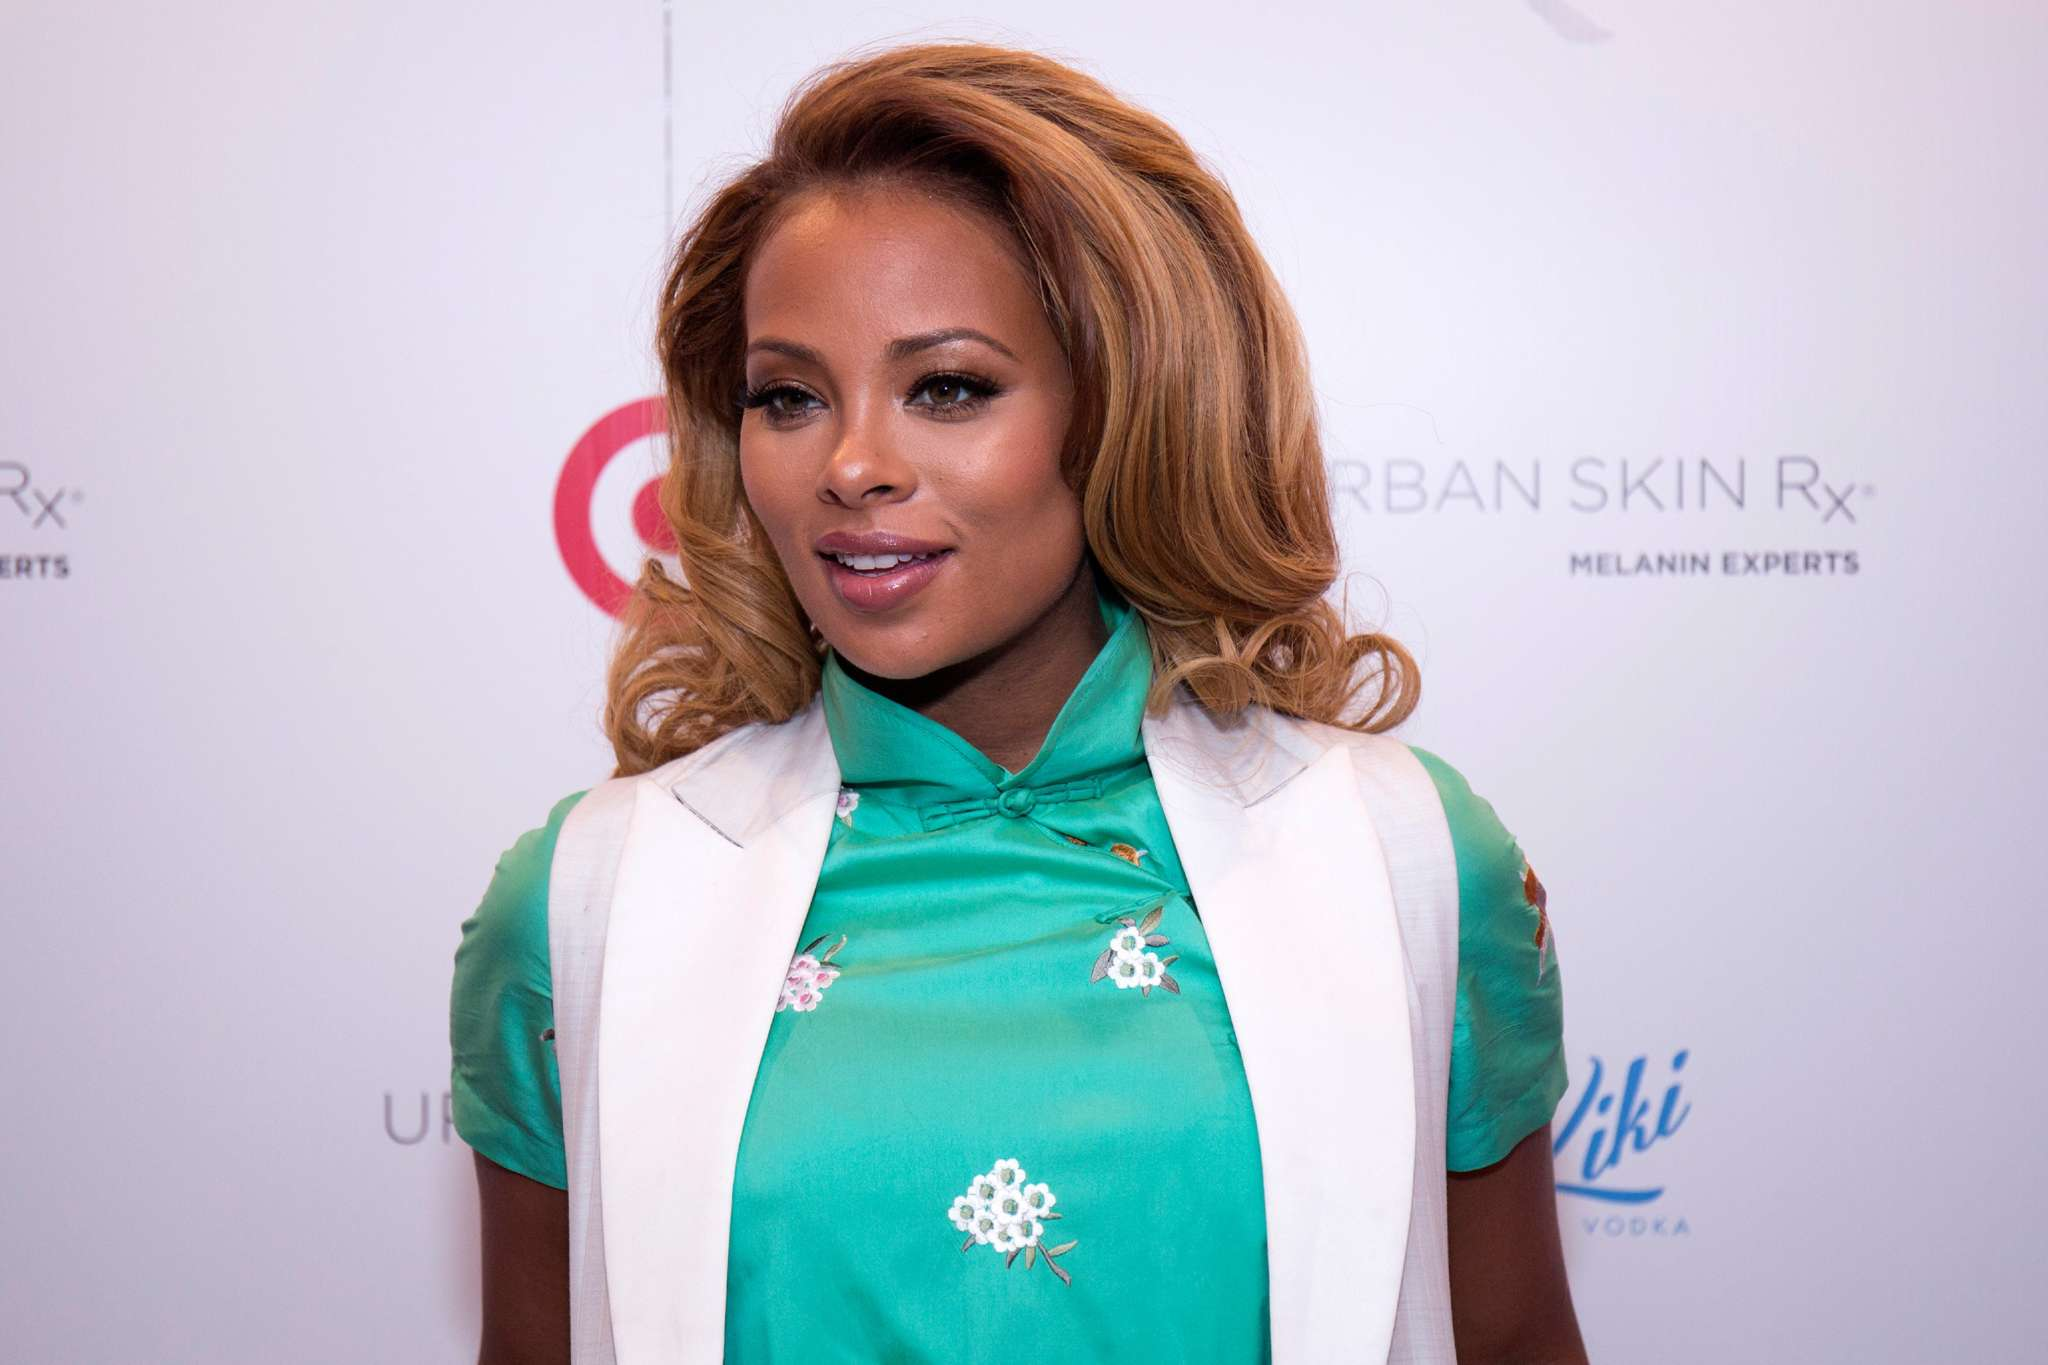 Eva Marcille Gets Cheeky With Her Latest Post – See It Here